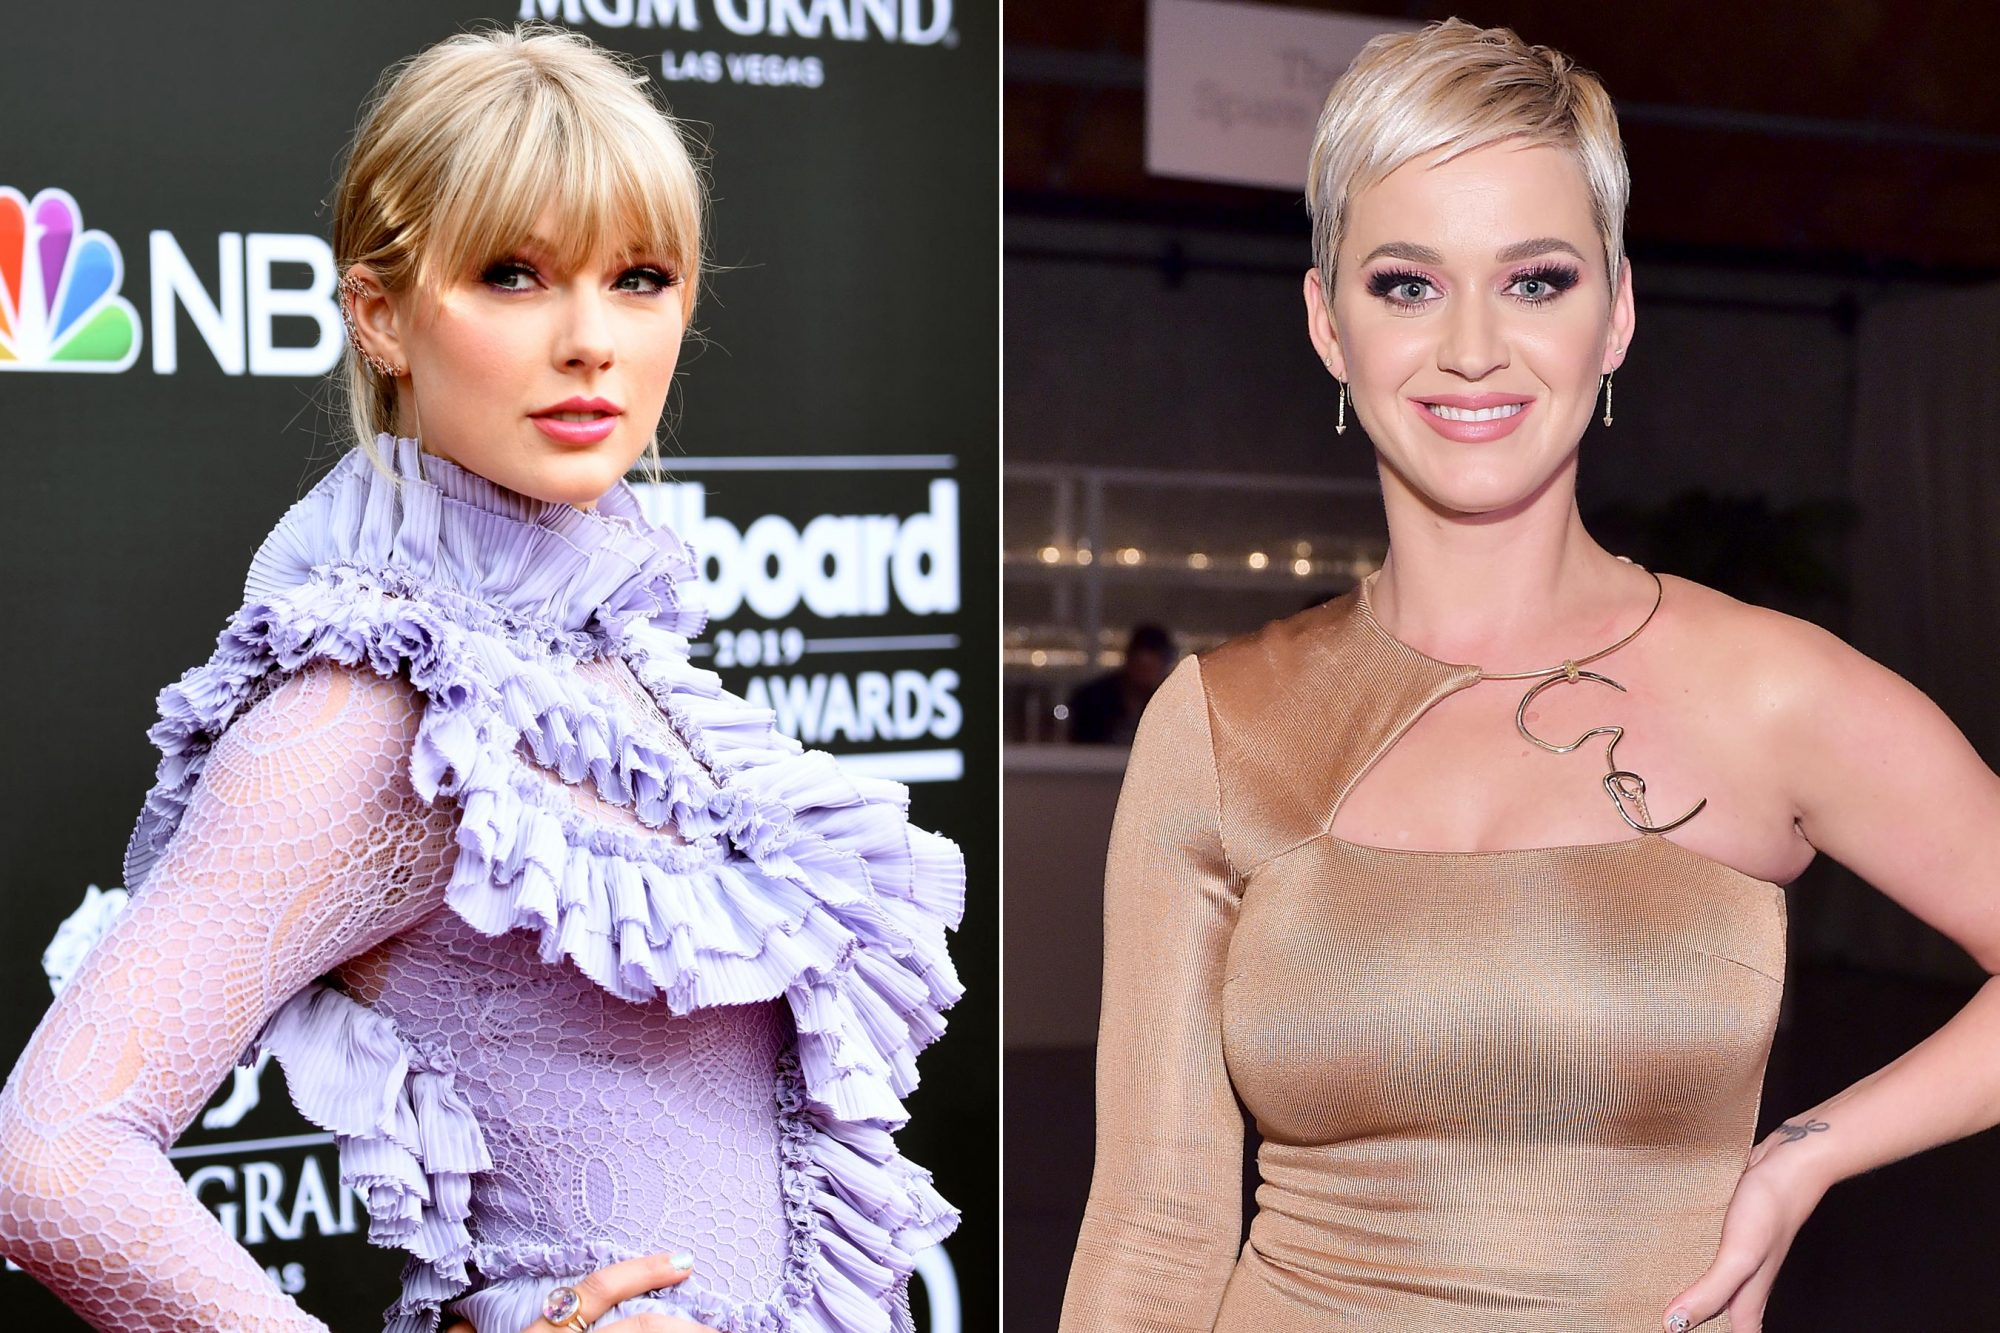 LAS VEGAS, NEVADA - MAY 01: Taylor Swift attends the 2019 Billboard Music Awards at MGM Grand Garden Arena on May 01, 2019 in Las Vegas, Nevada. (Photo by Frazer Harrison/Getty Images) CULVER CITY, CA - NOVEMBER 10: Katy Perry poses at the 2018 Baby2Baby Gala Presented by Paul Mitchell at 3LABS on November 10, 2018 in Culver City, California. (Photo by Stefanie Keenan/Getty Images for Baby2Baby)